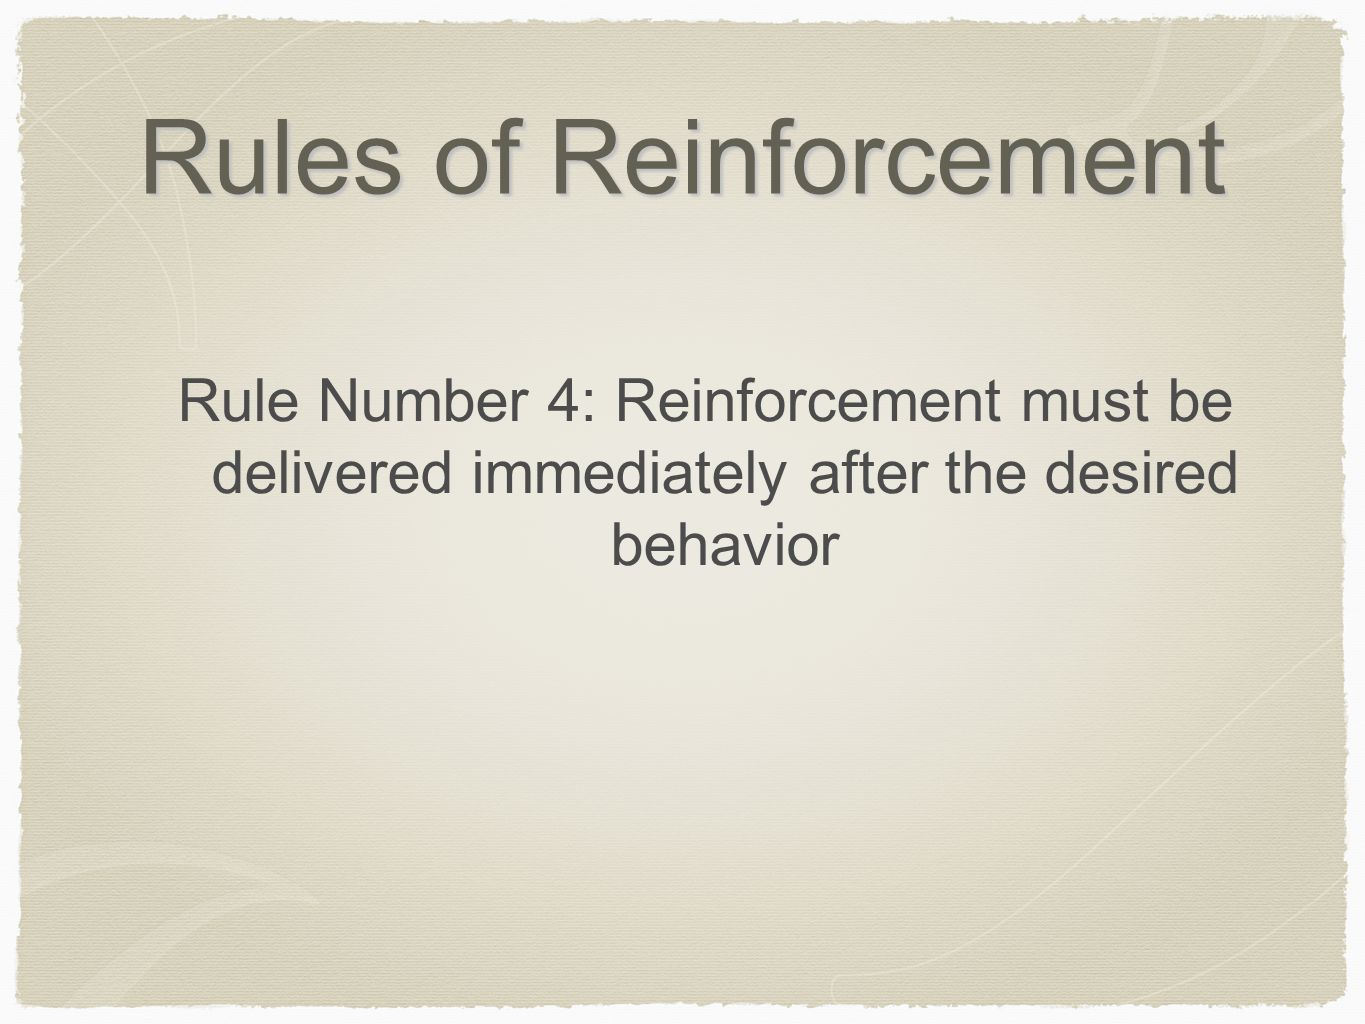 Rules of Reinforcement Rule Number 4: Reinforcement must be delivered immediately after the desired behavior